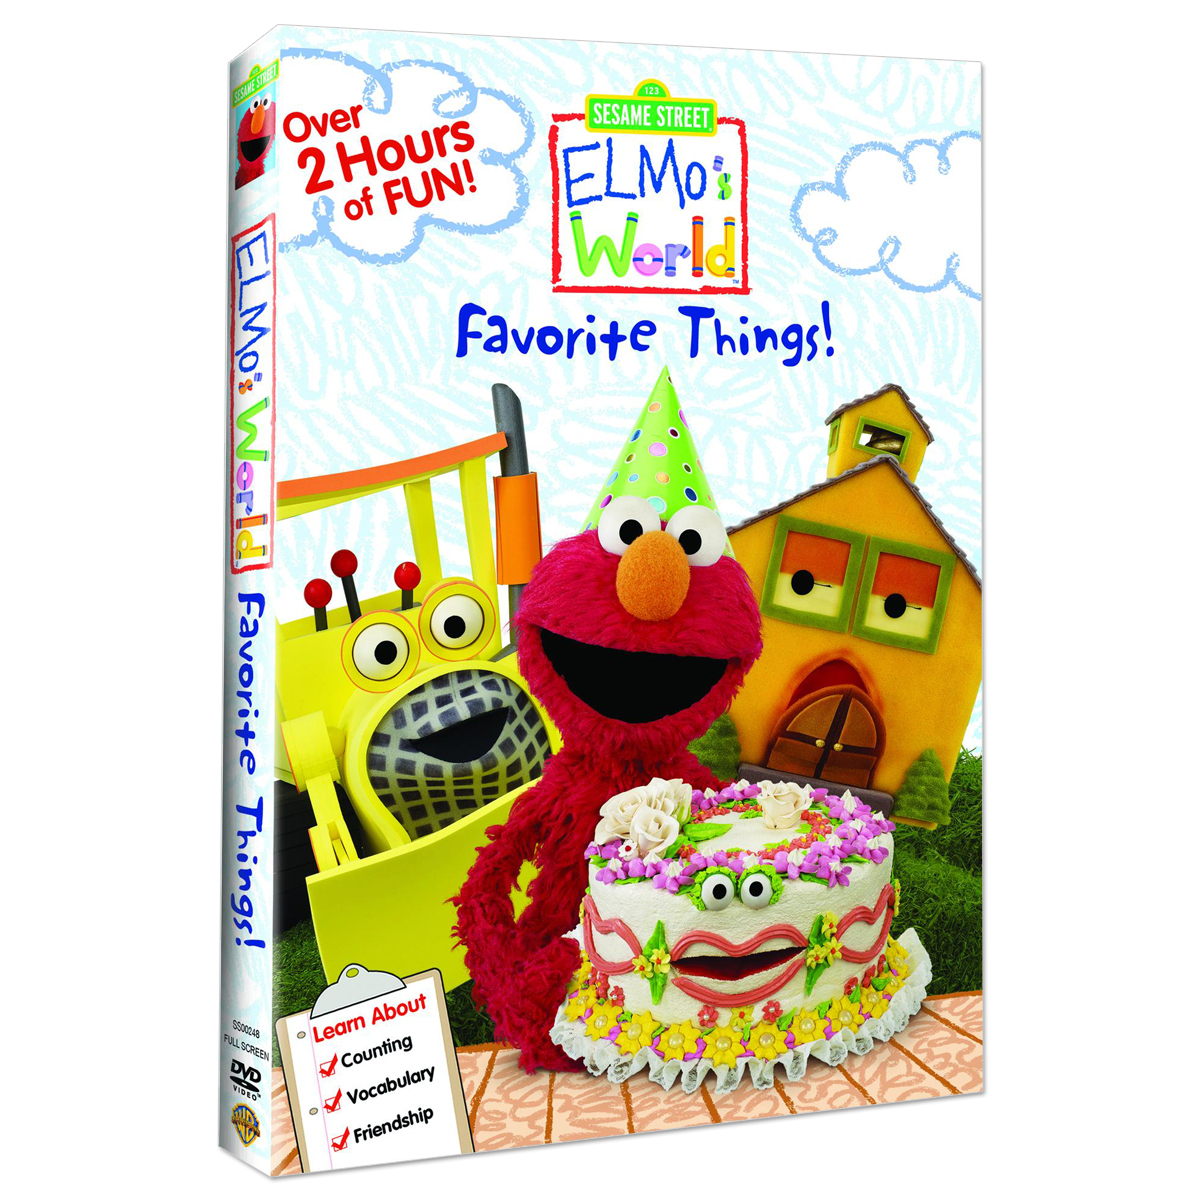 Elmos World: Favorite Things DVD